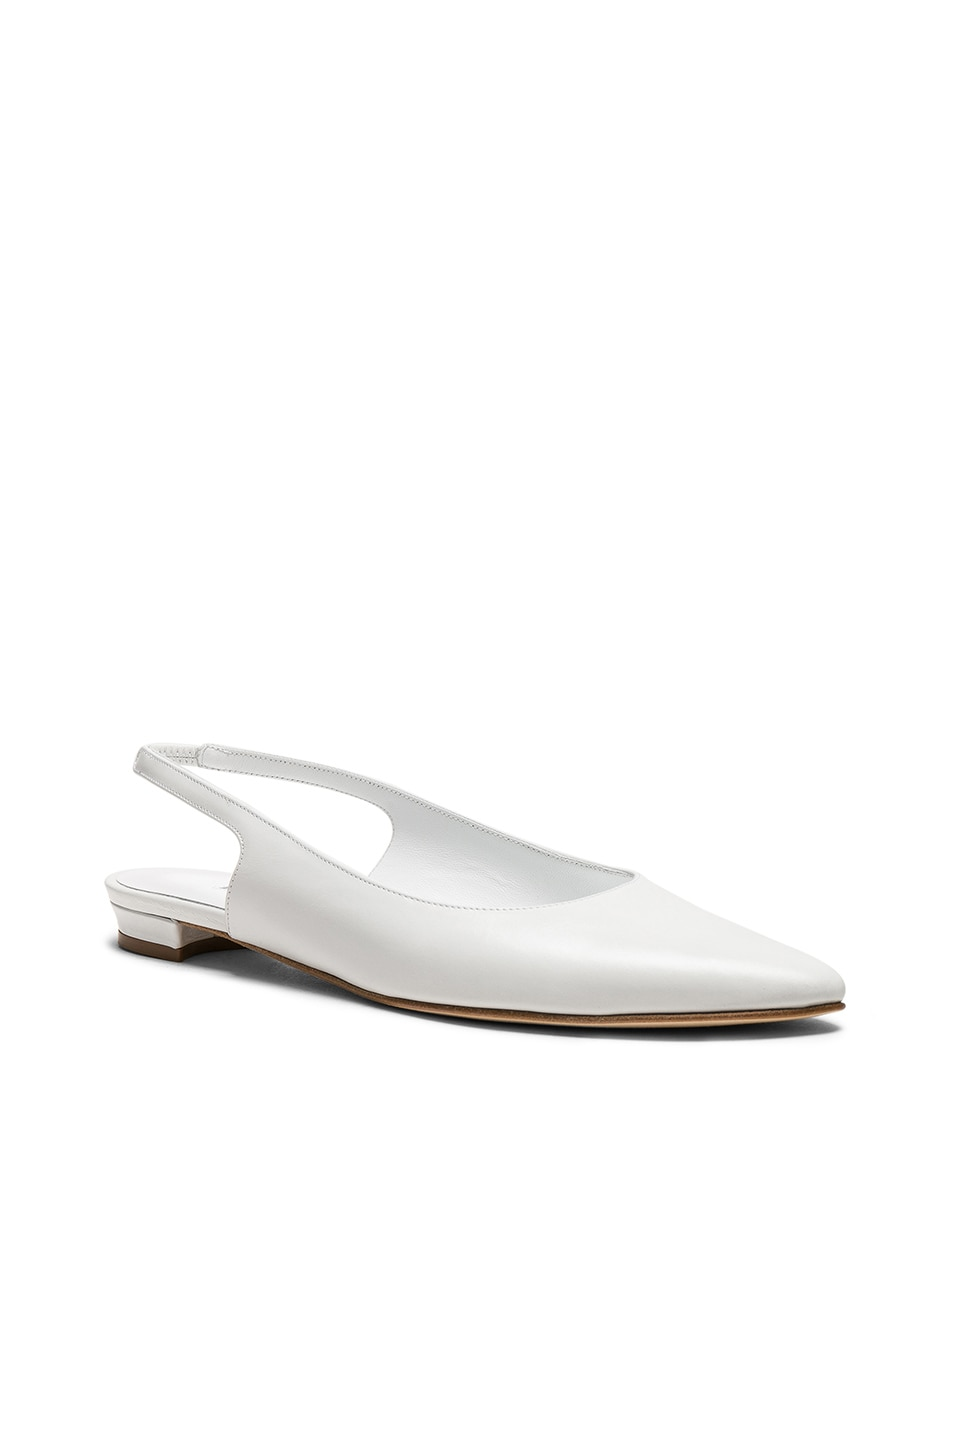 Image 2 of Manolo Blahnik Leather Allura Flats in White Calf